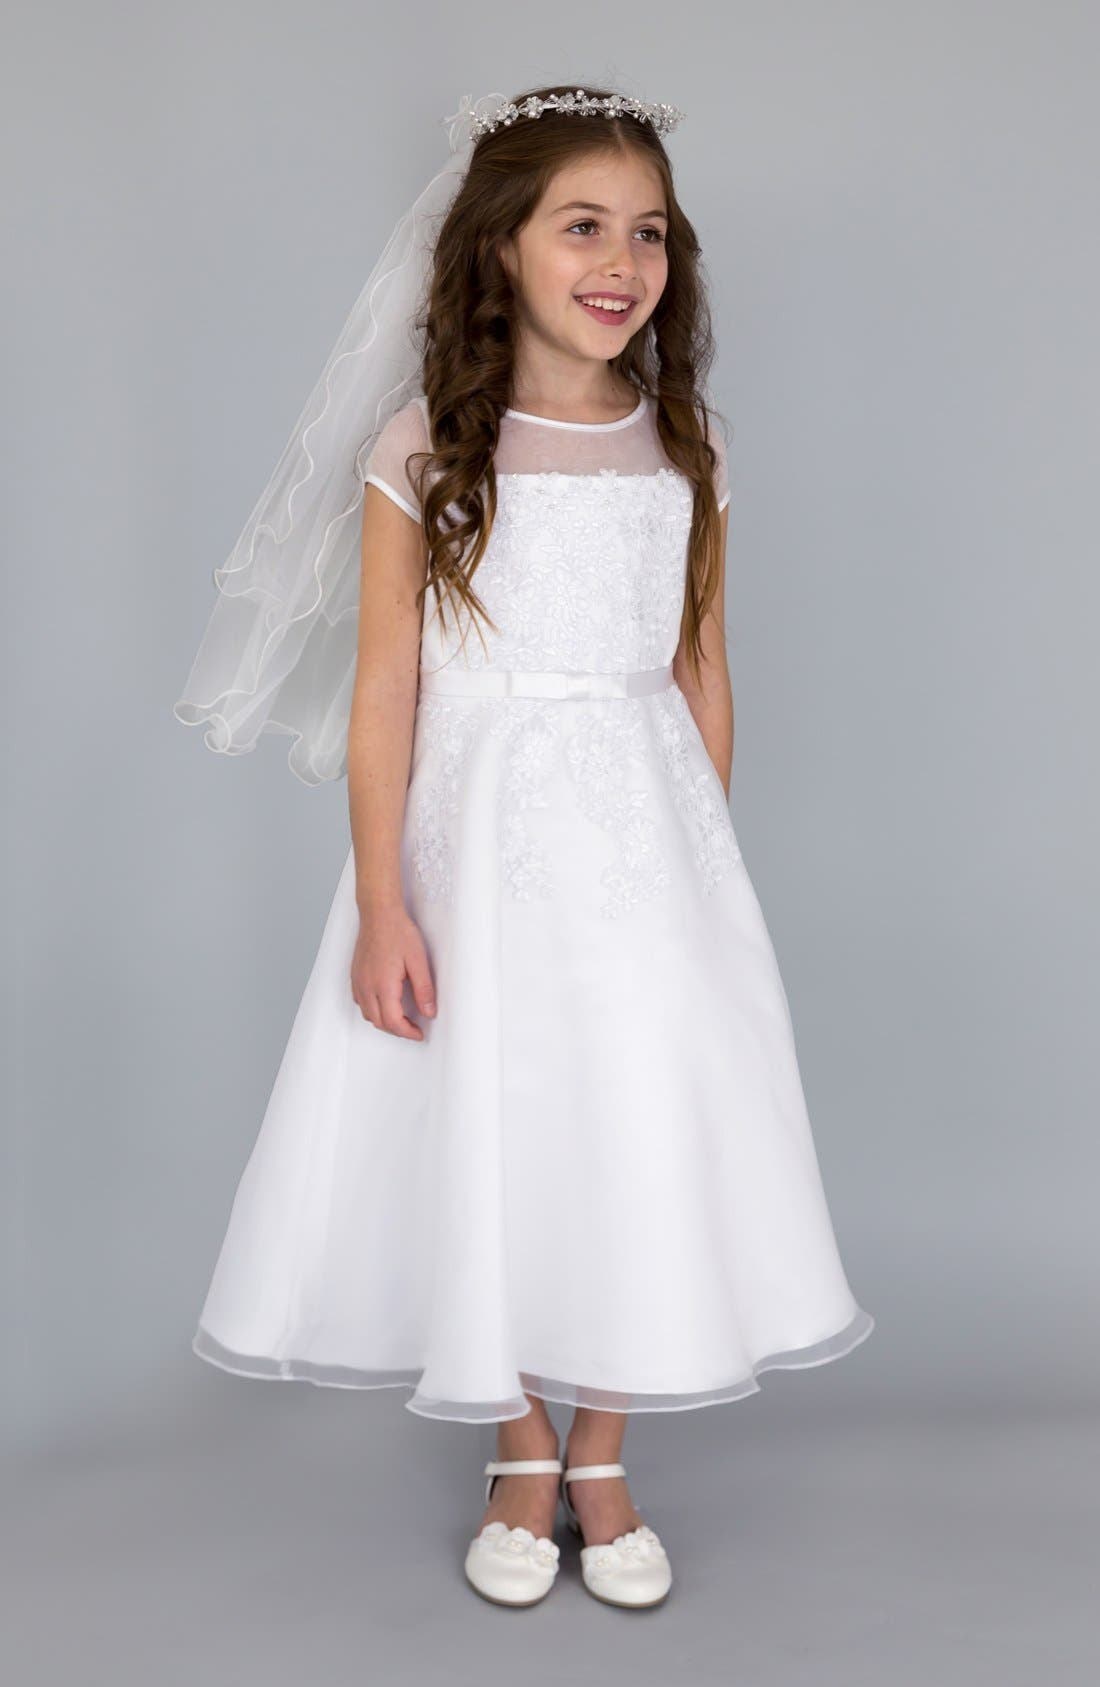 White Church Dresses for Juniors Confirmation